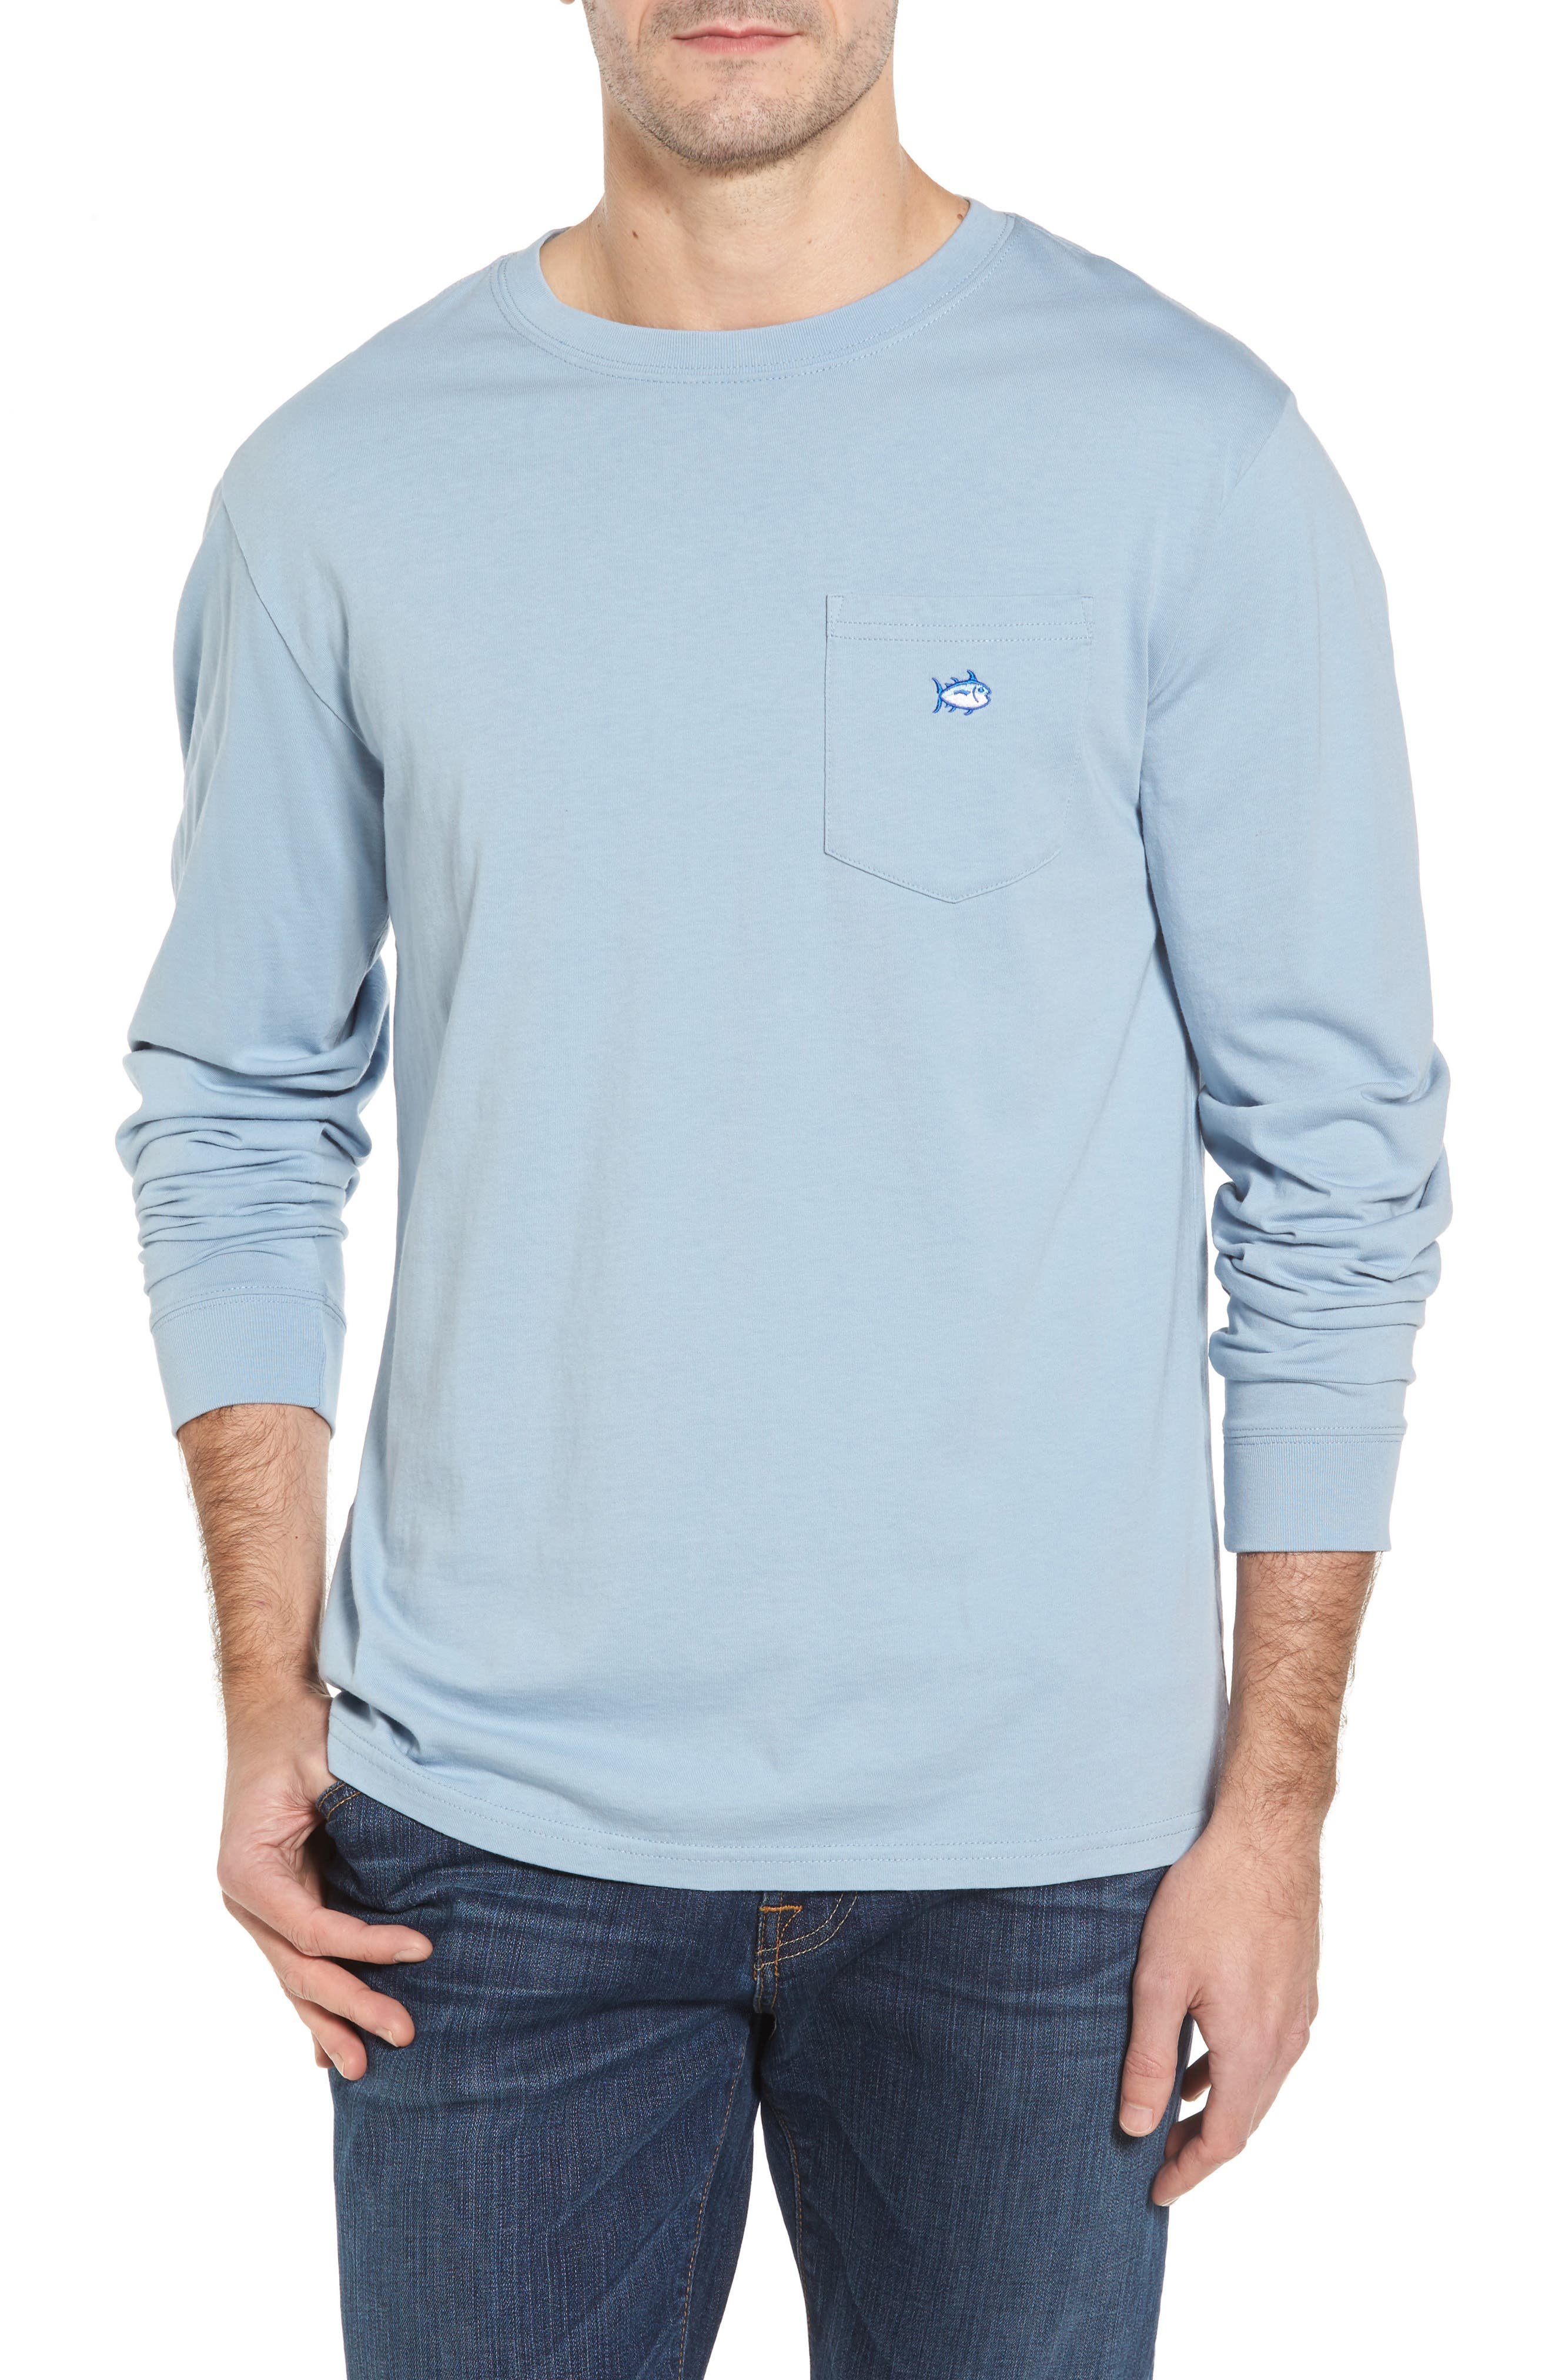 Main Image - Southern Tide Embroidered Long Sleeve T-Shirt